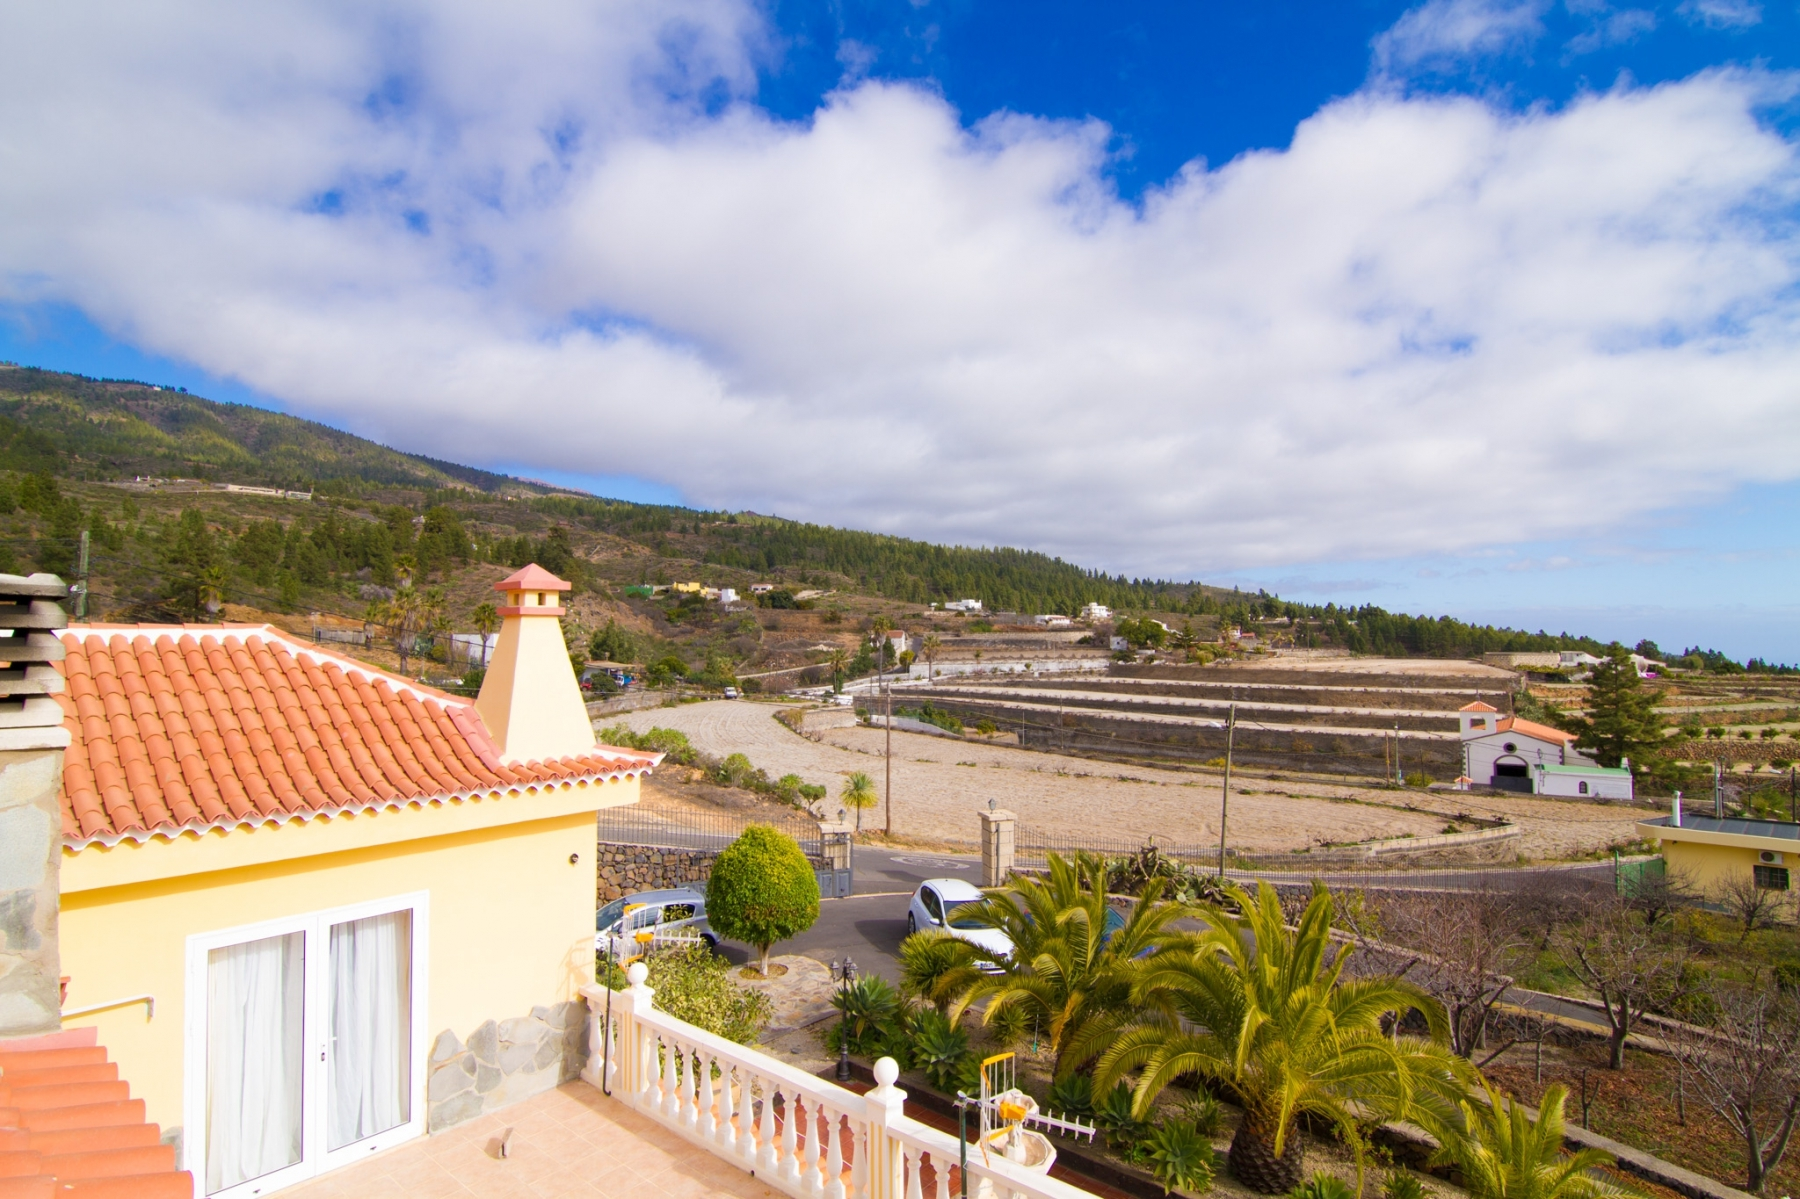 Properties for Sale in Tenerife, Canary Islands, Spain | SylkWayStar Real Estate. Finca with vineyard - Cruz de Tea - Granadilla de Abona . Image-21836